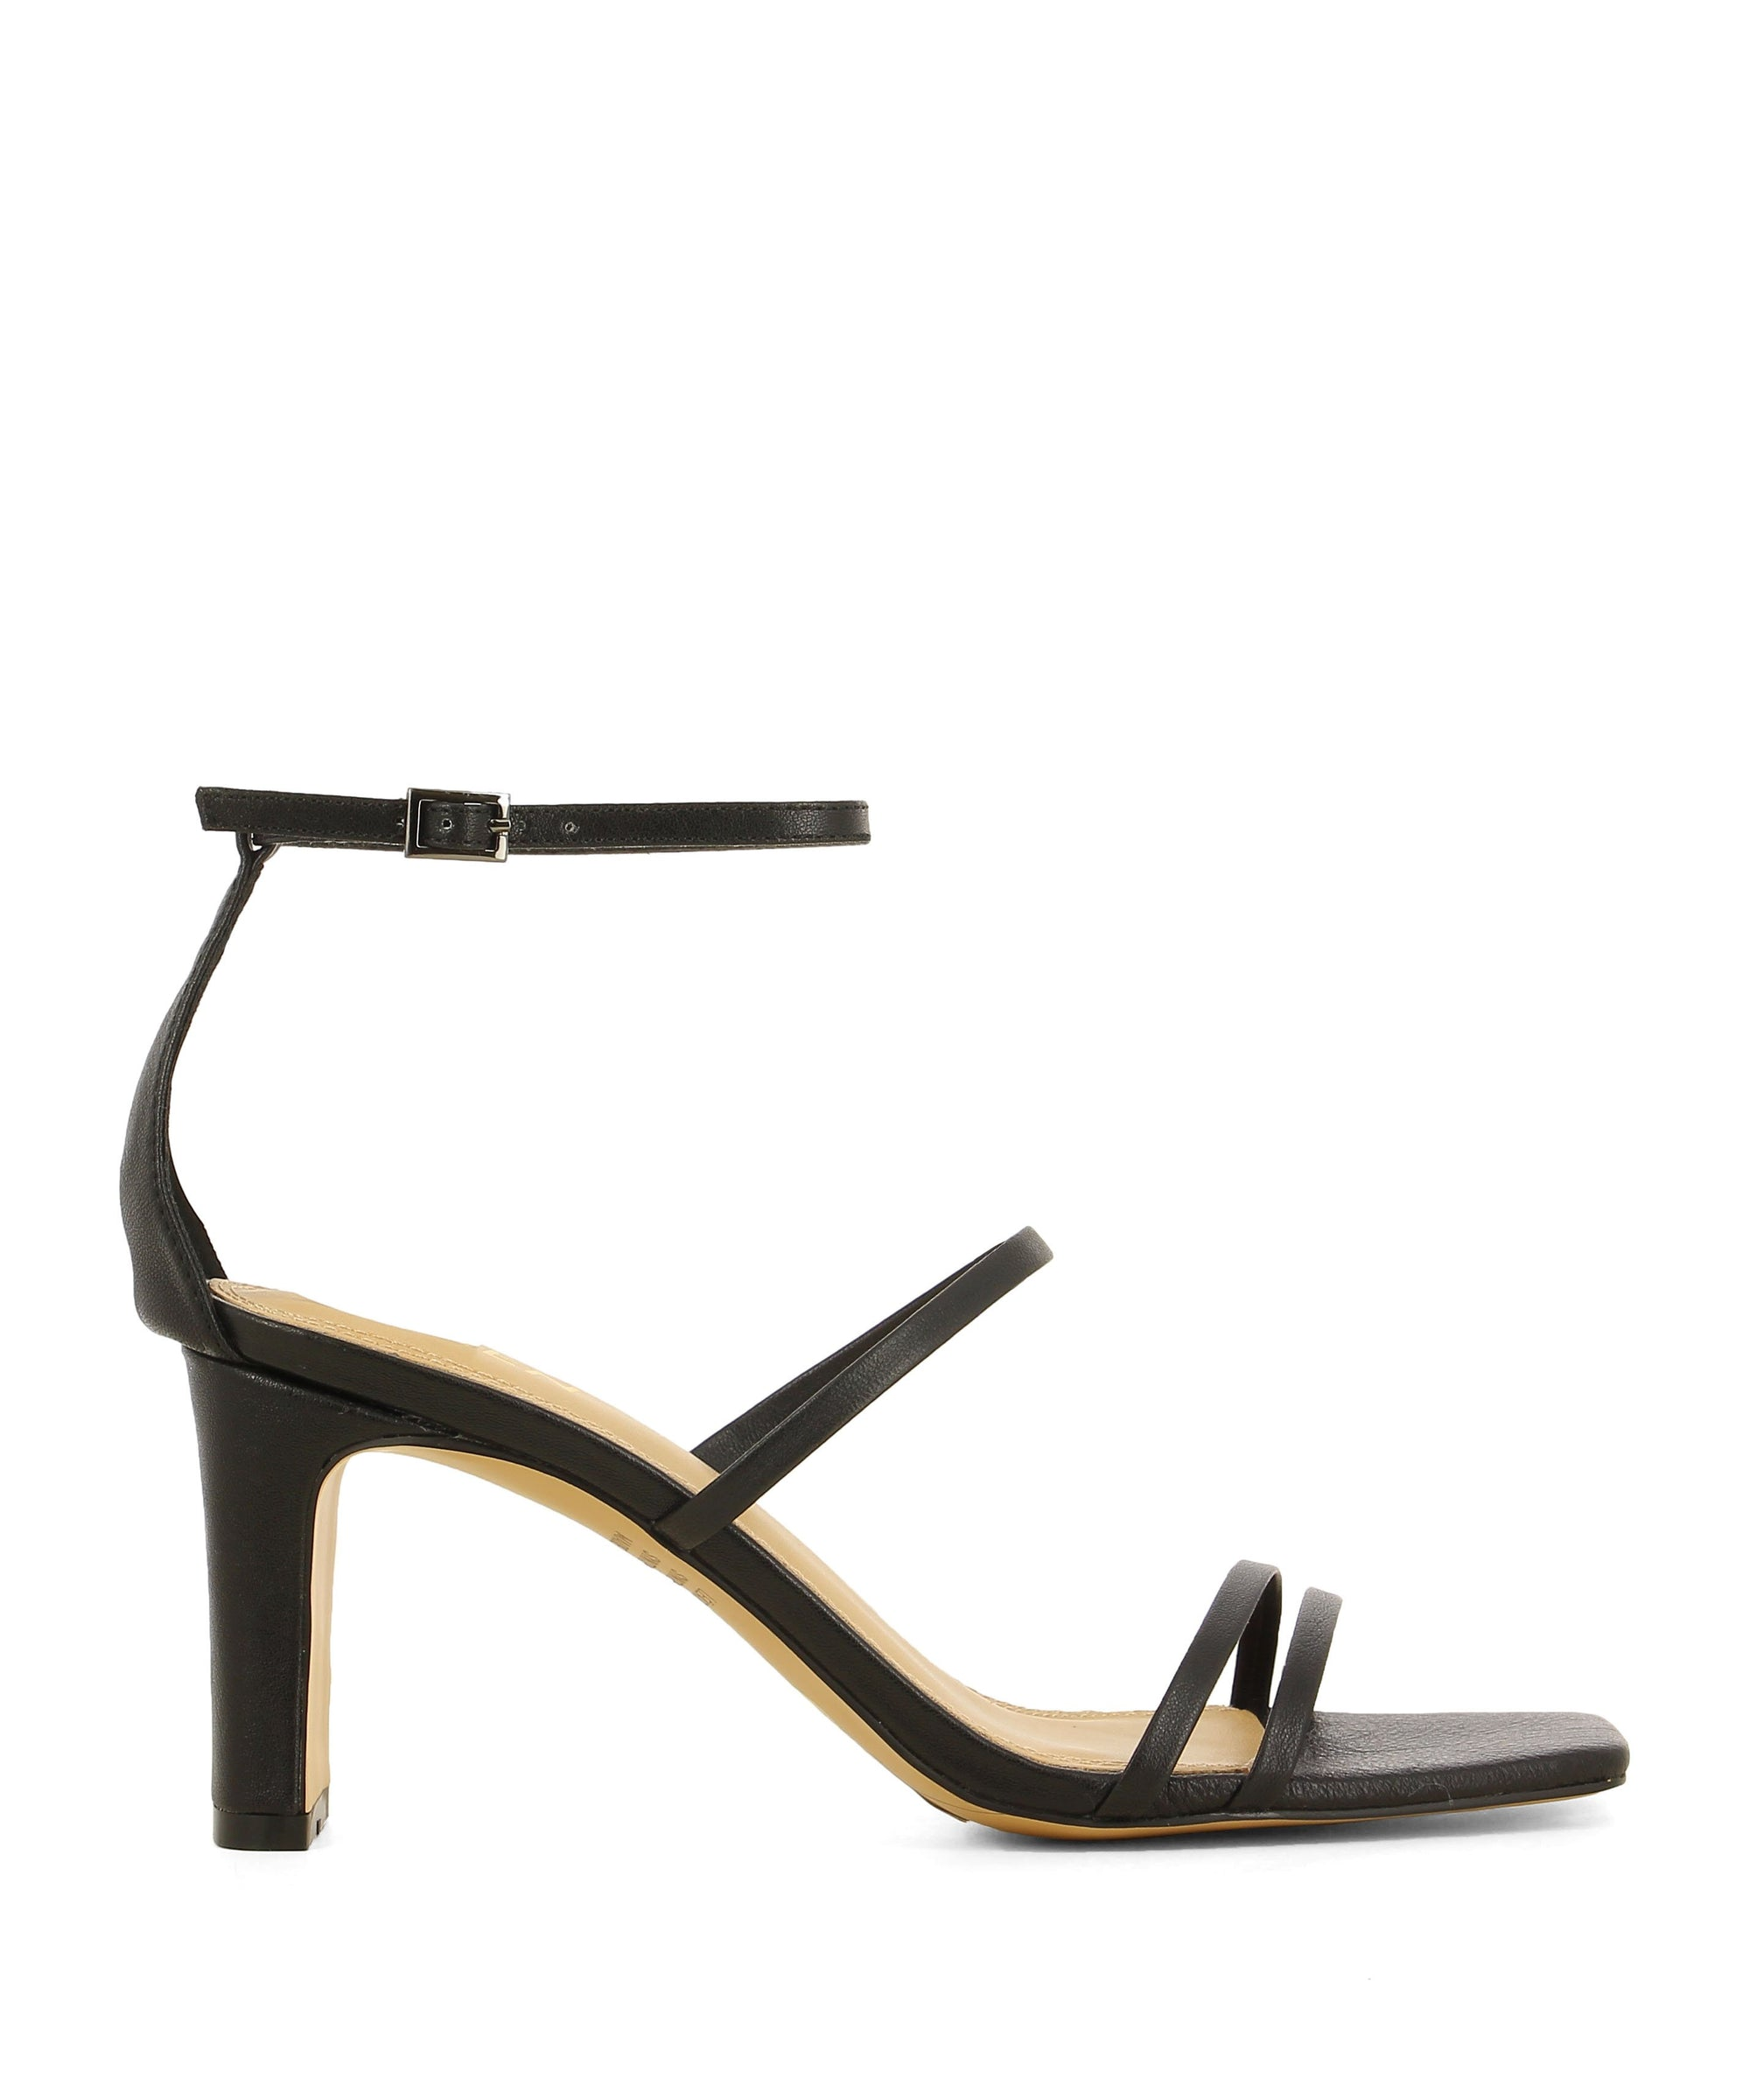 Black leather strappy heeled sandals that have an ankle strap with a silver buckle fastening and features a block heel and a square toe by Siren.